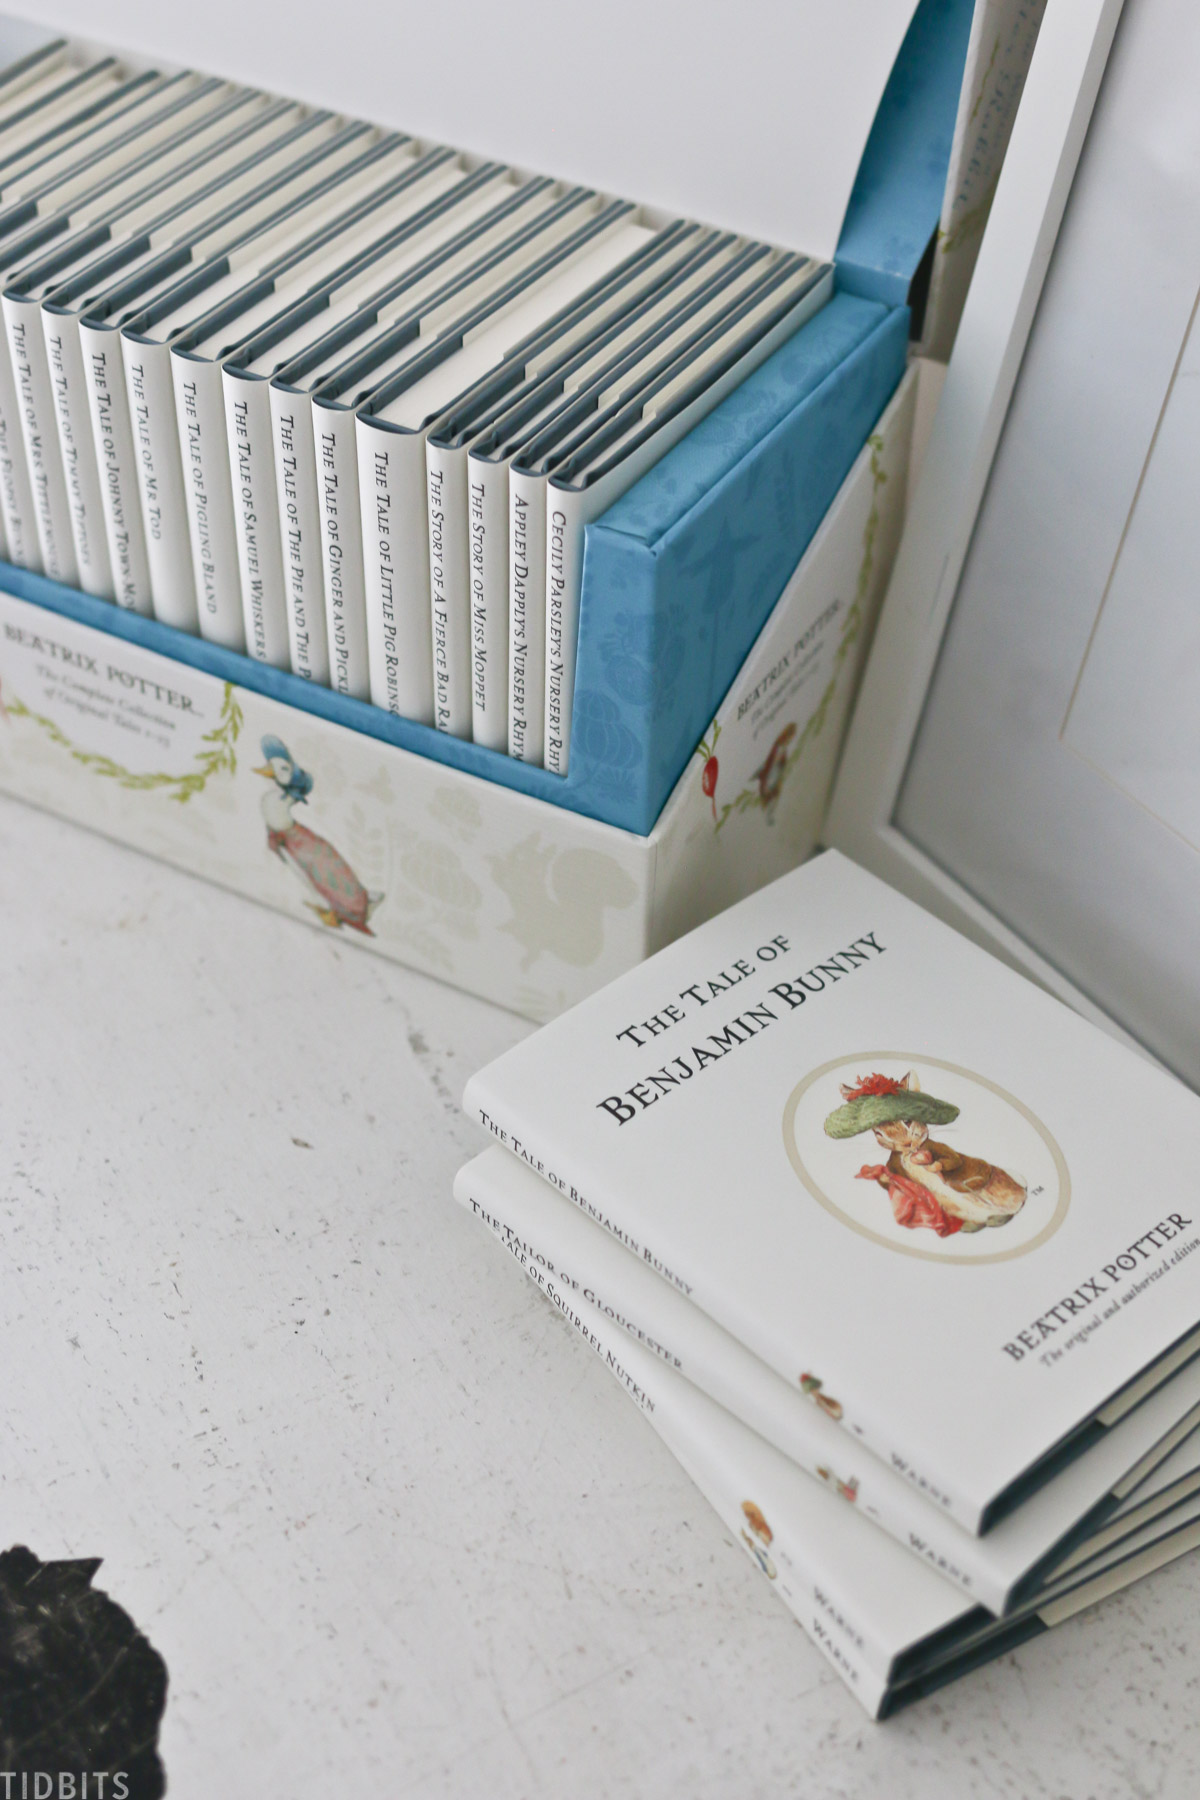 The World of Peter Rabbit, books 1 through 23, in a presentation box